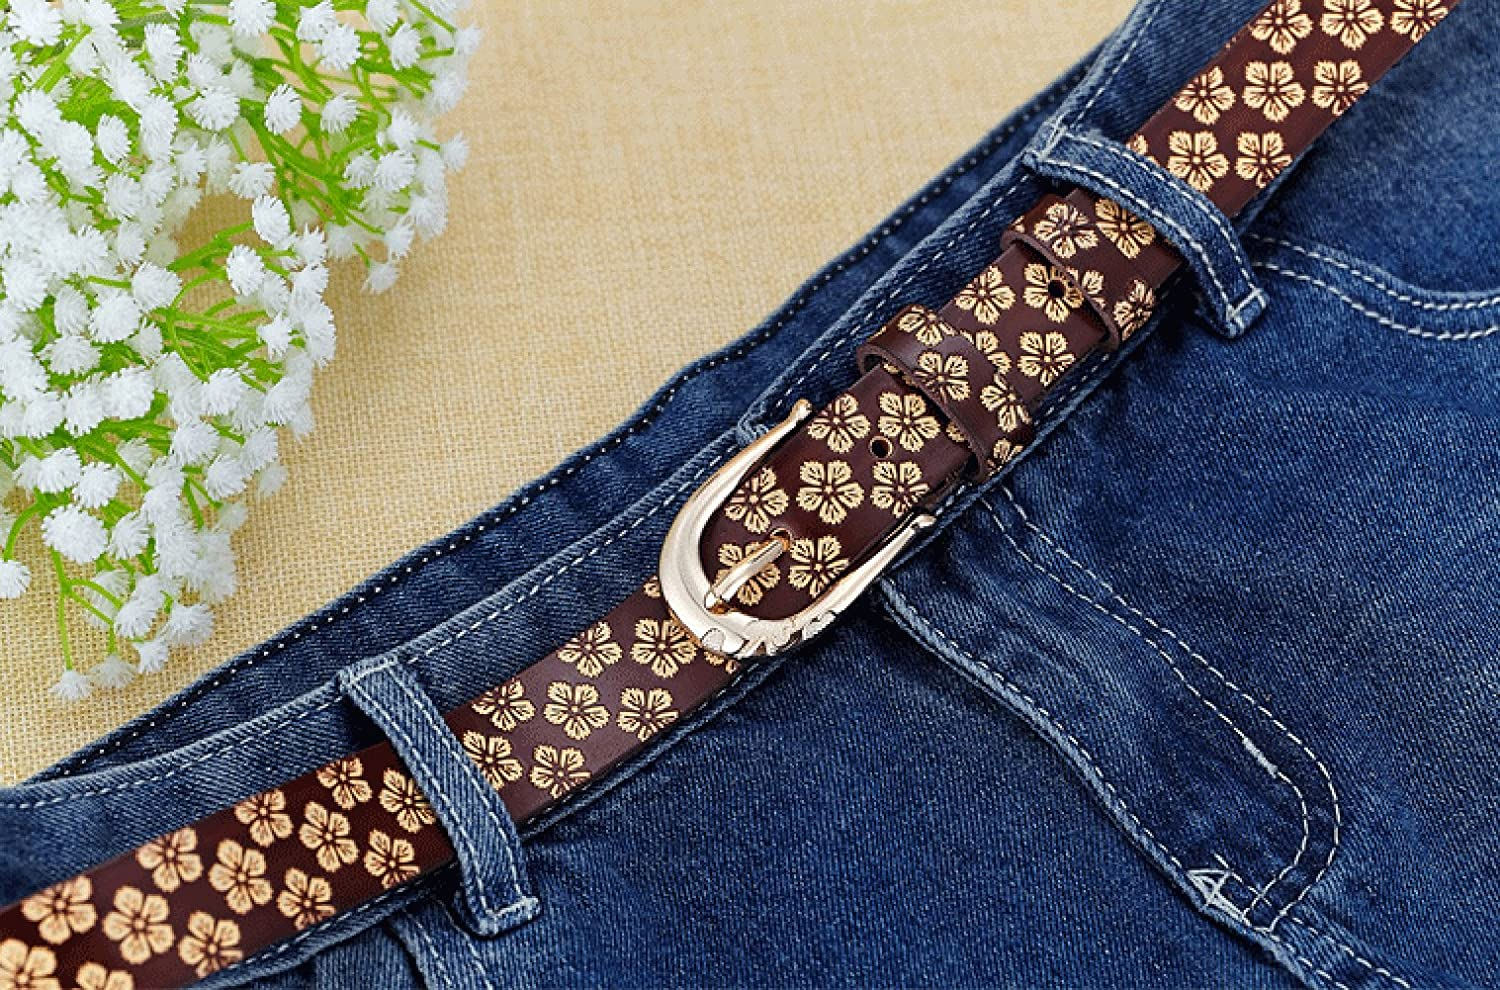 E-Clover Womens Pretty Skinny Floral Carved Jean Belt Gold Tone Buckle